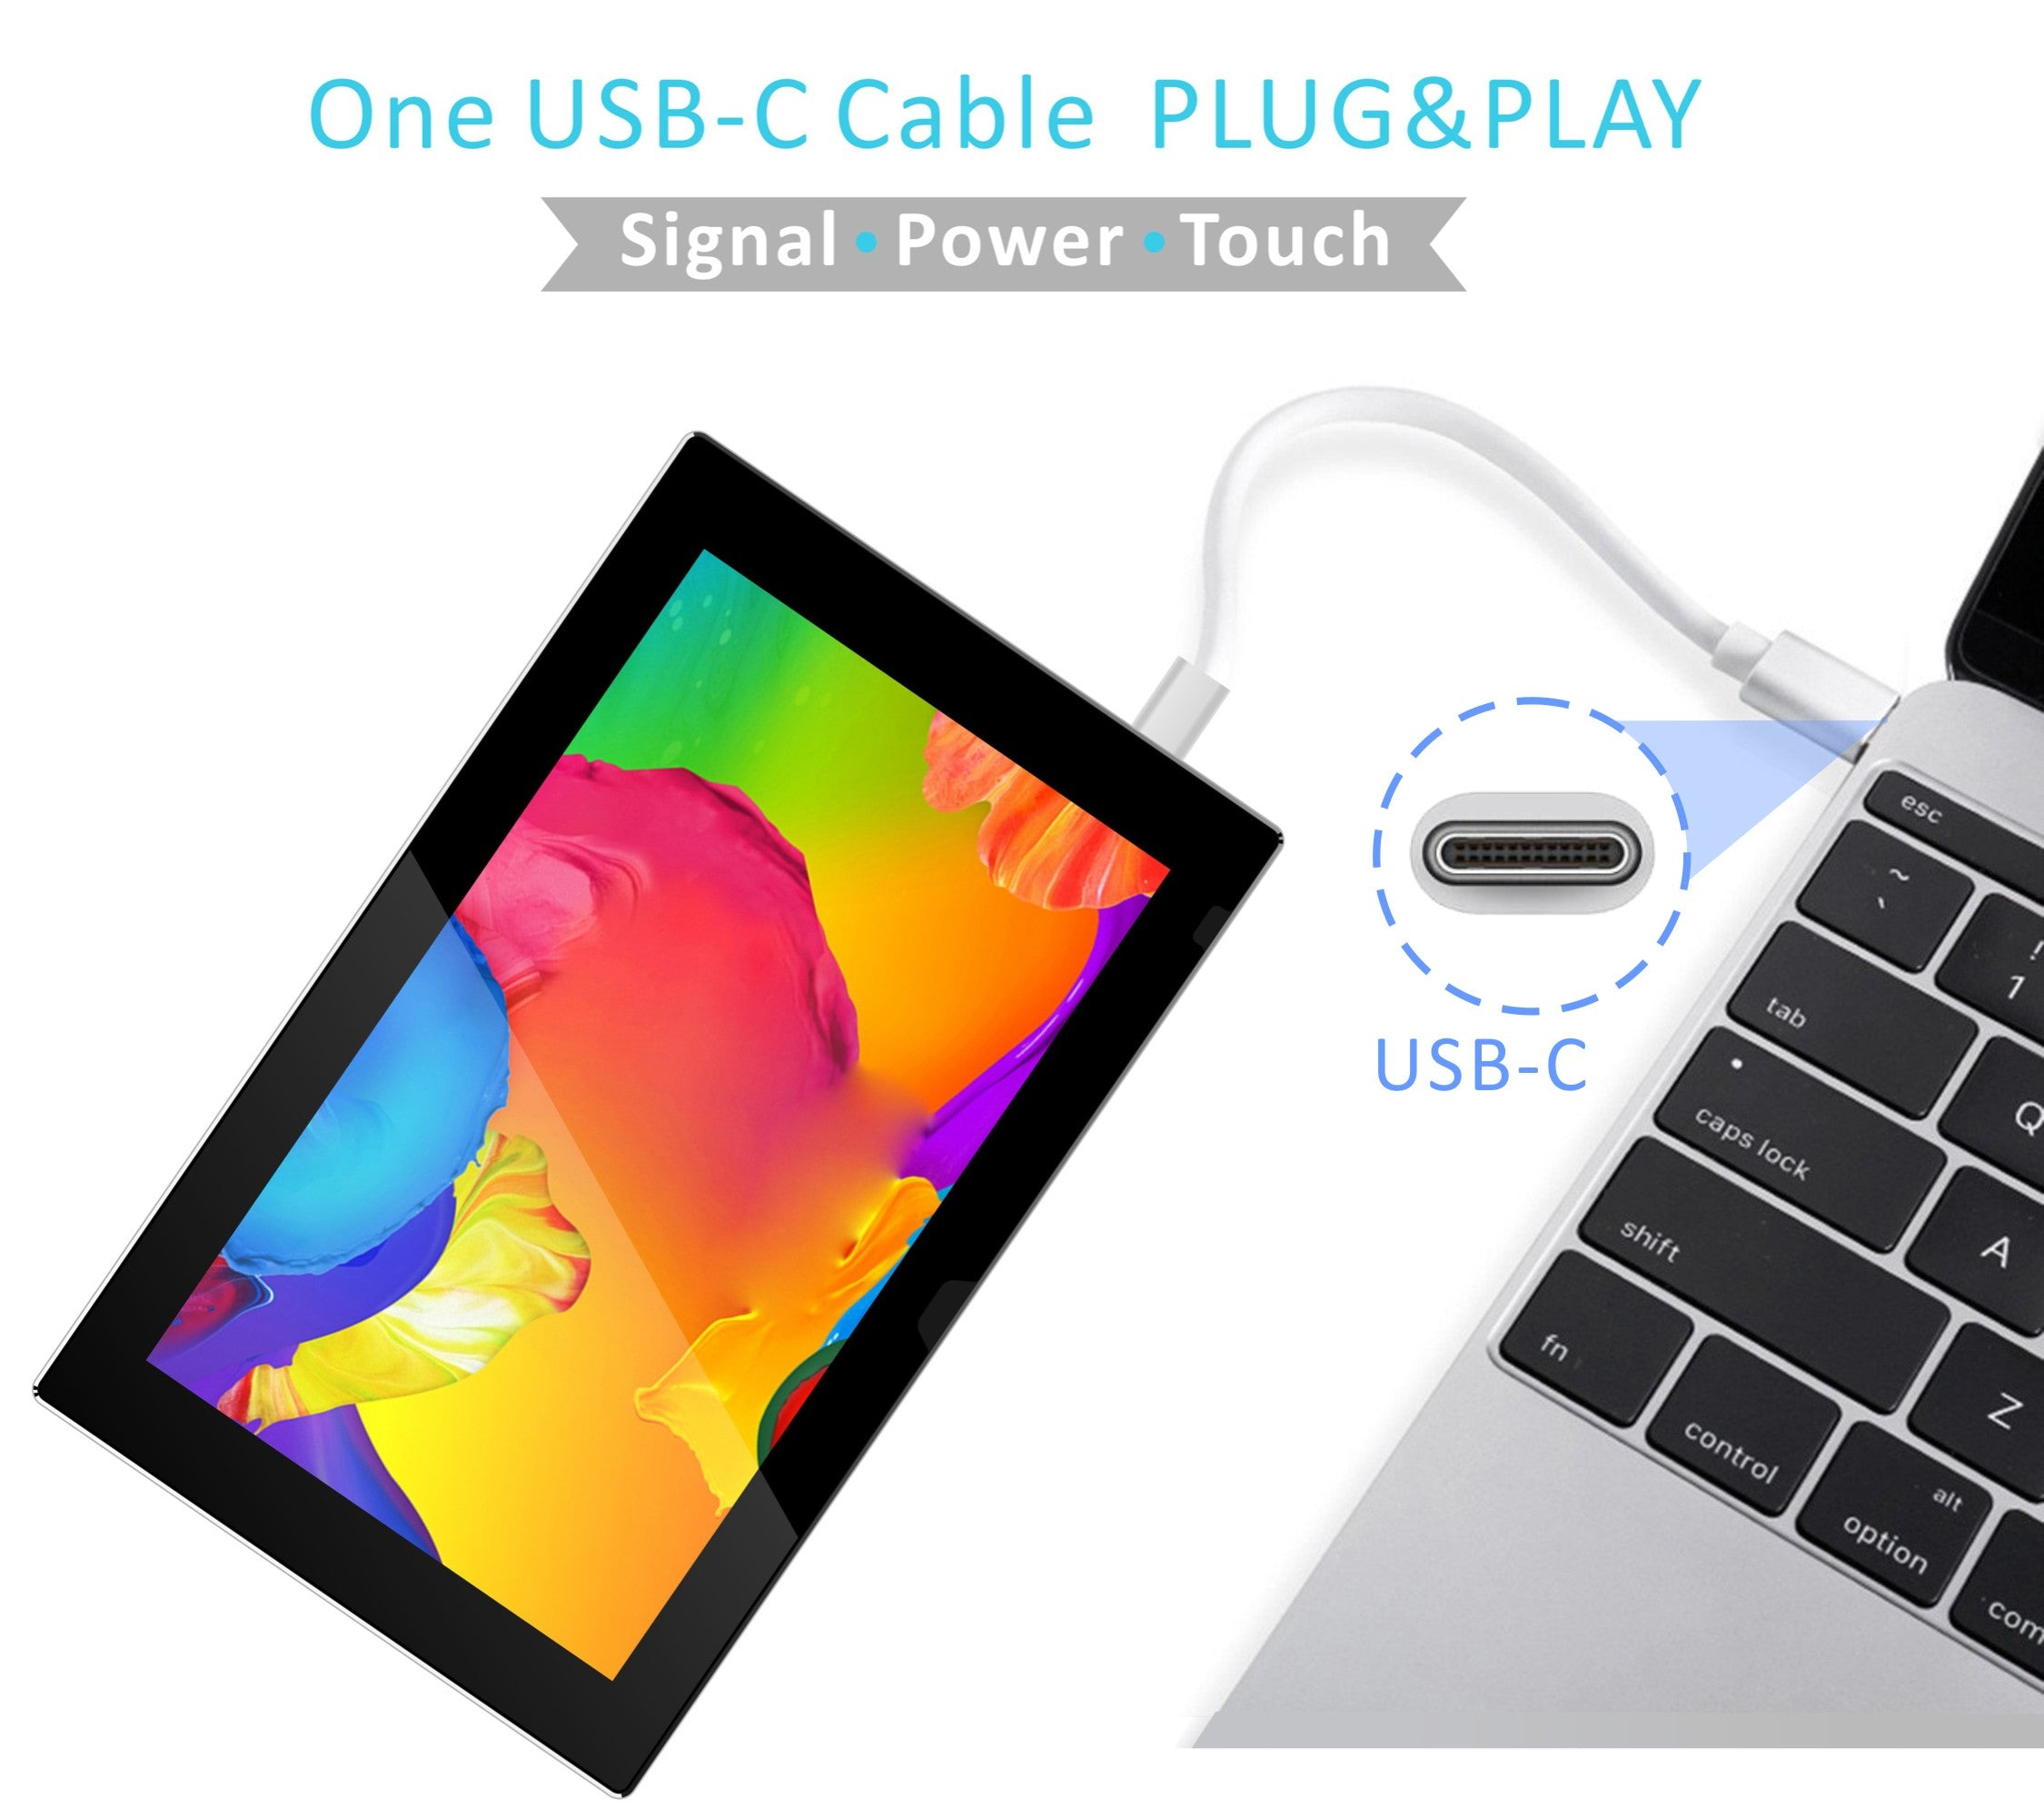 11 6 inch 1080P FHD USB-C Capacitive Touch Portable Monitor(T116C)